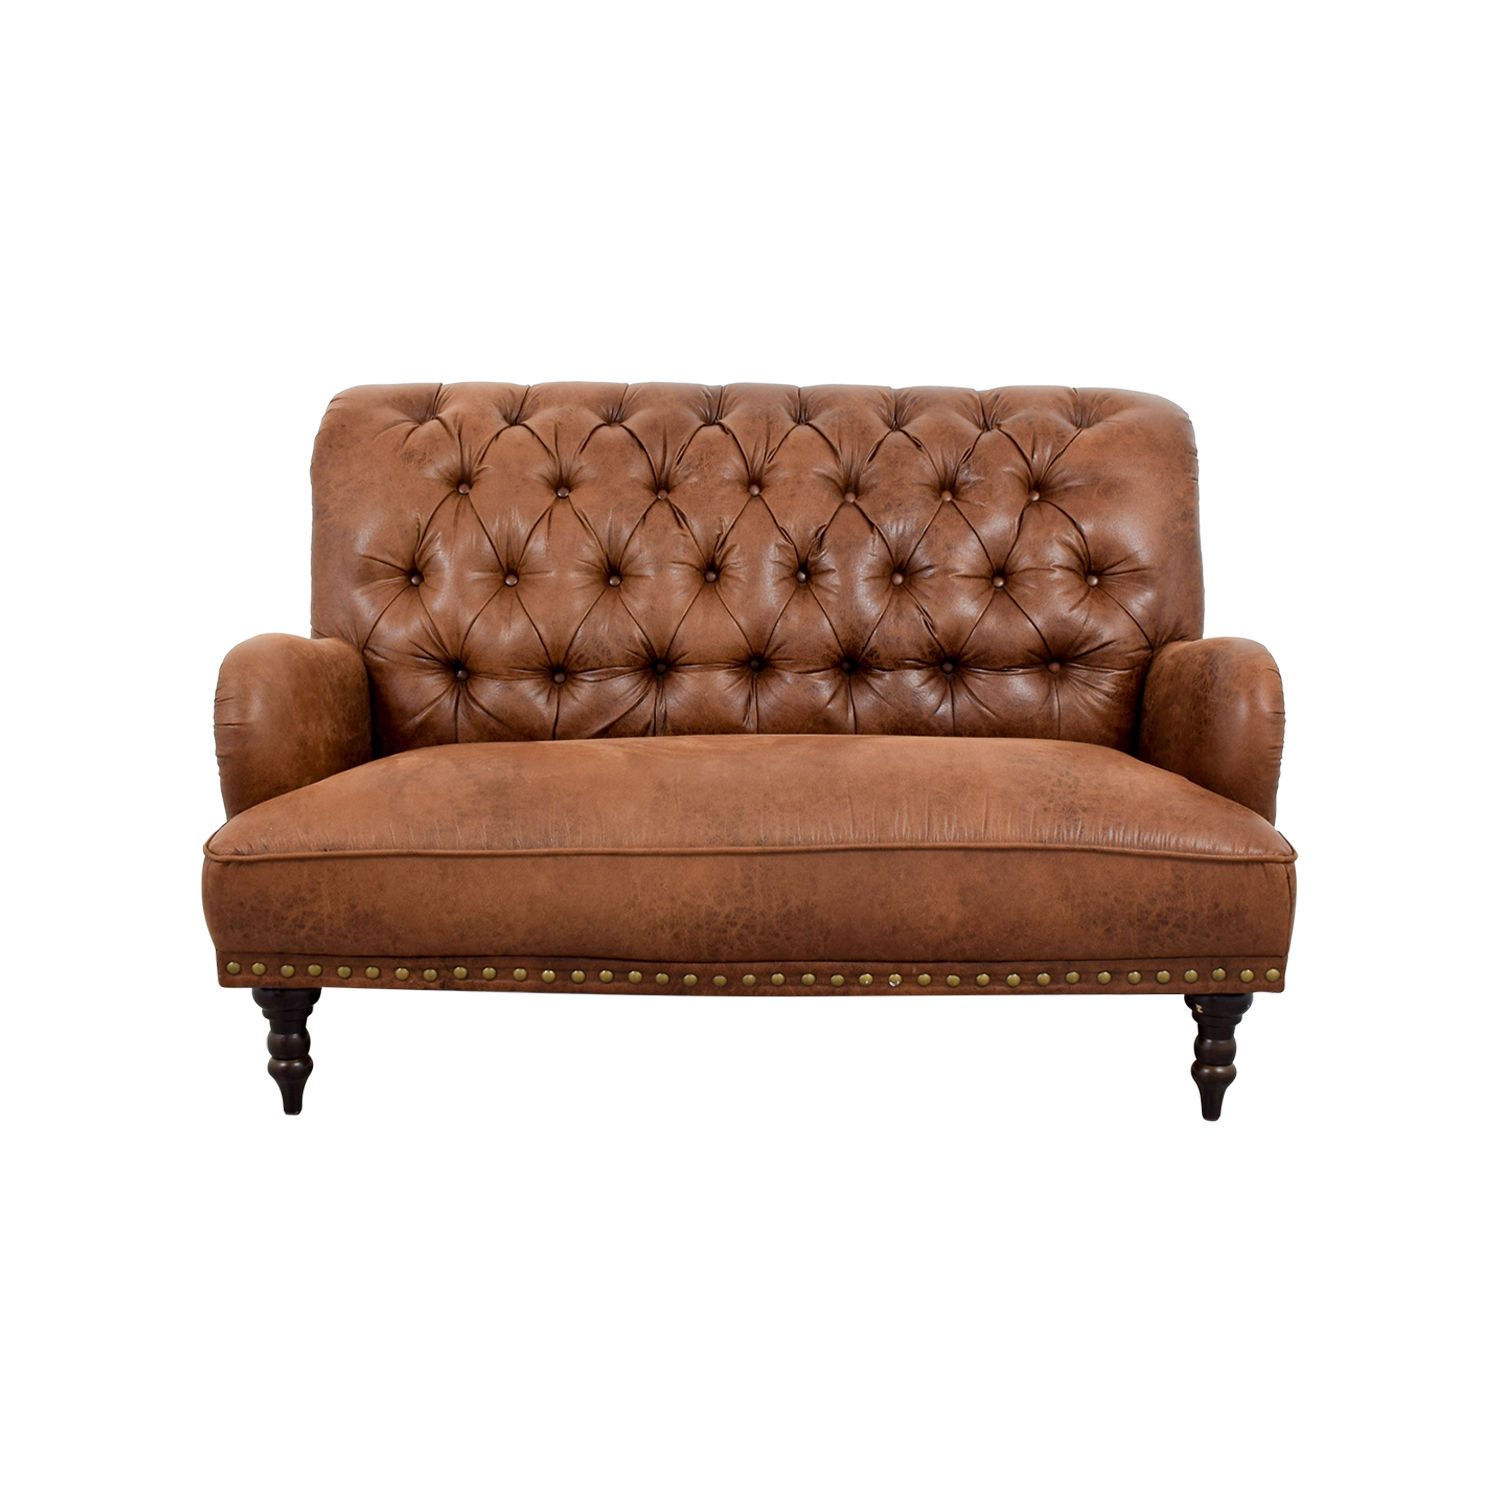 Groovy 36 Off Pier 1 Pier 1 Imports Faux Vintage Tufted Brown Leather Sofa Sofas Ibusinesslaw Wood Chair Design Ideas Ibusinesslaworg